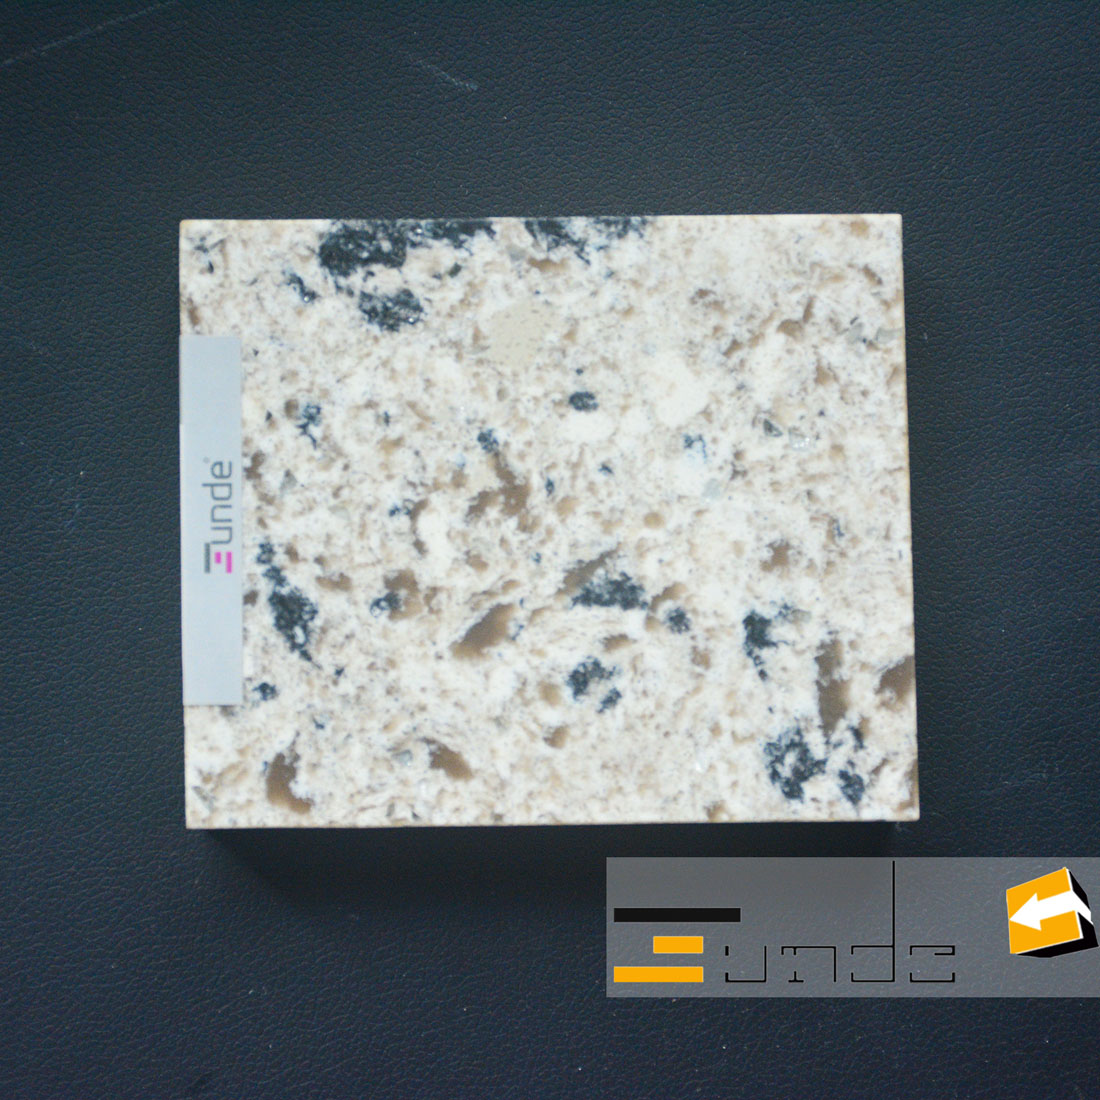 calacatta yellow quartz stone sample jd417-3